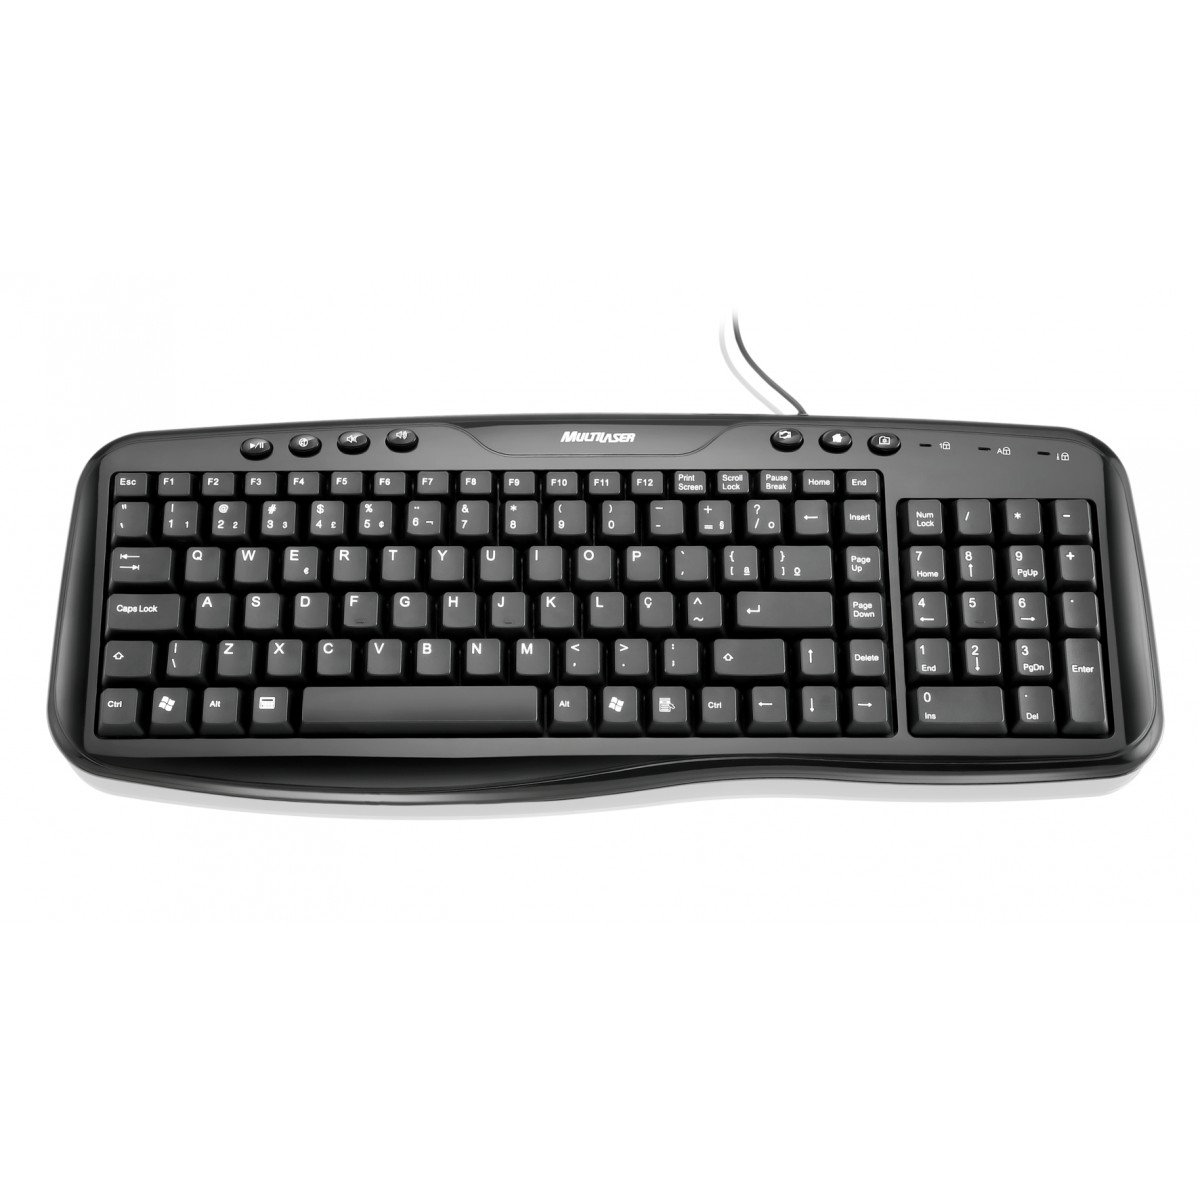 Teclado Super Multimidia Preto Piano USB TC127 - Multilaser